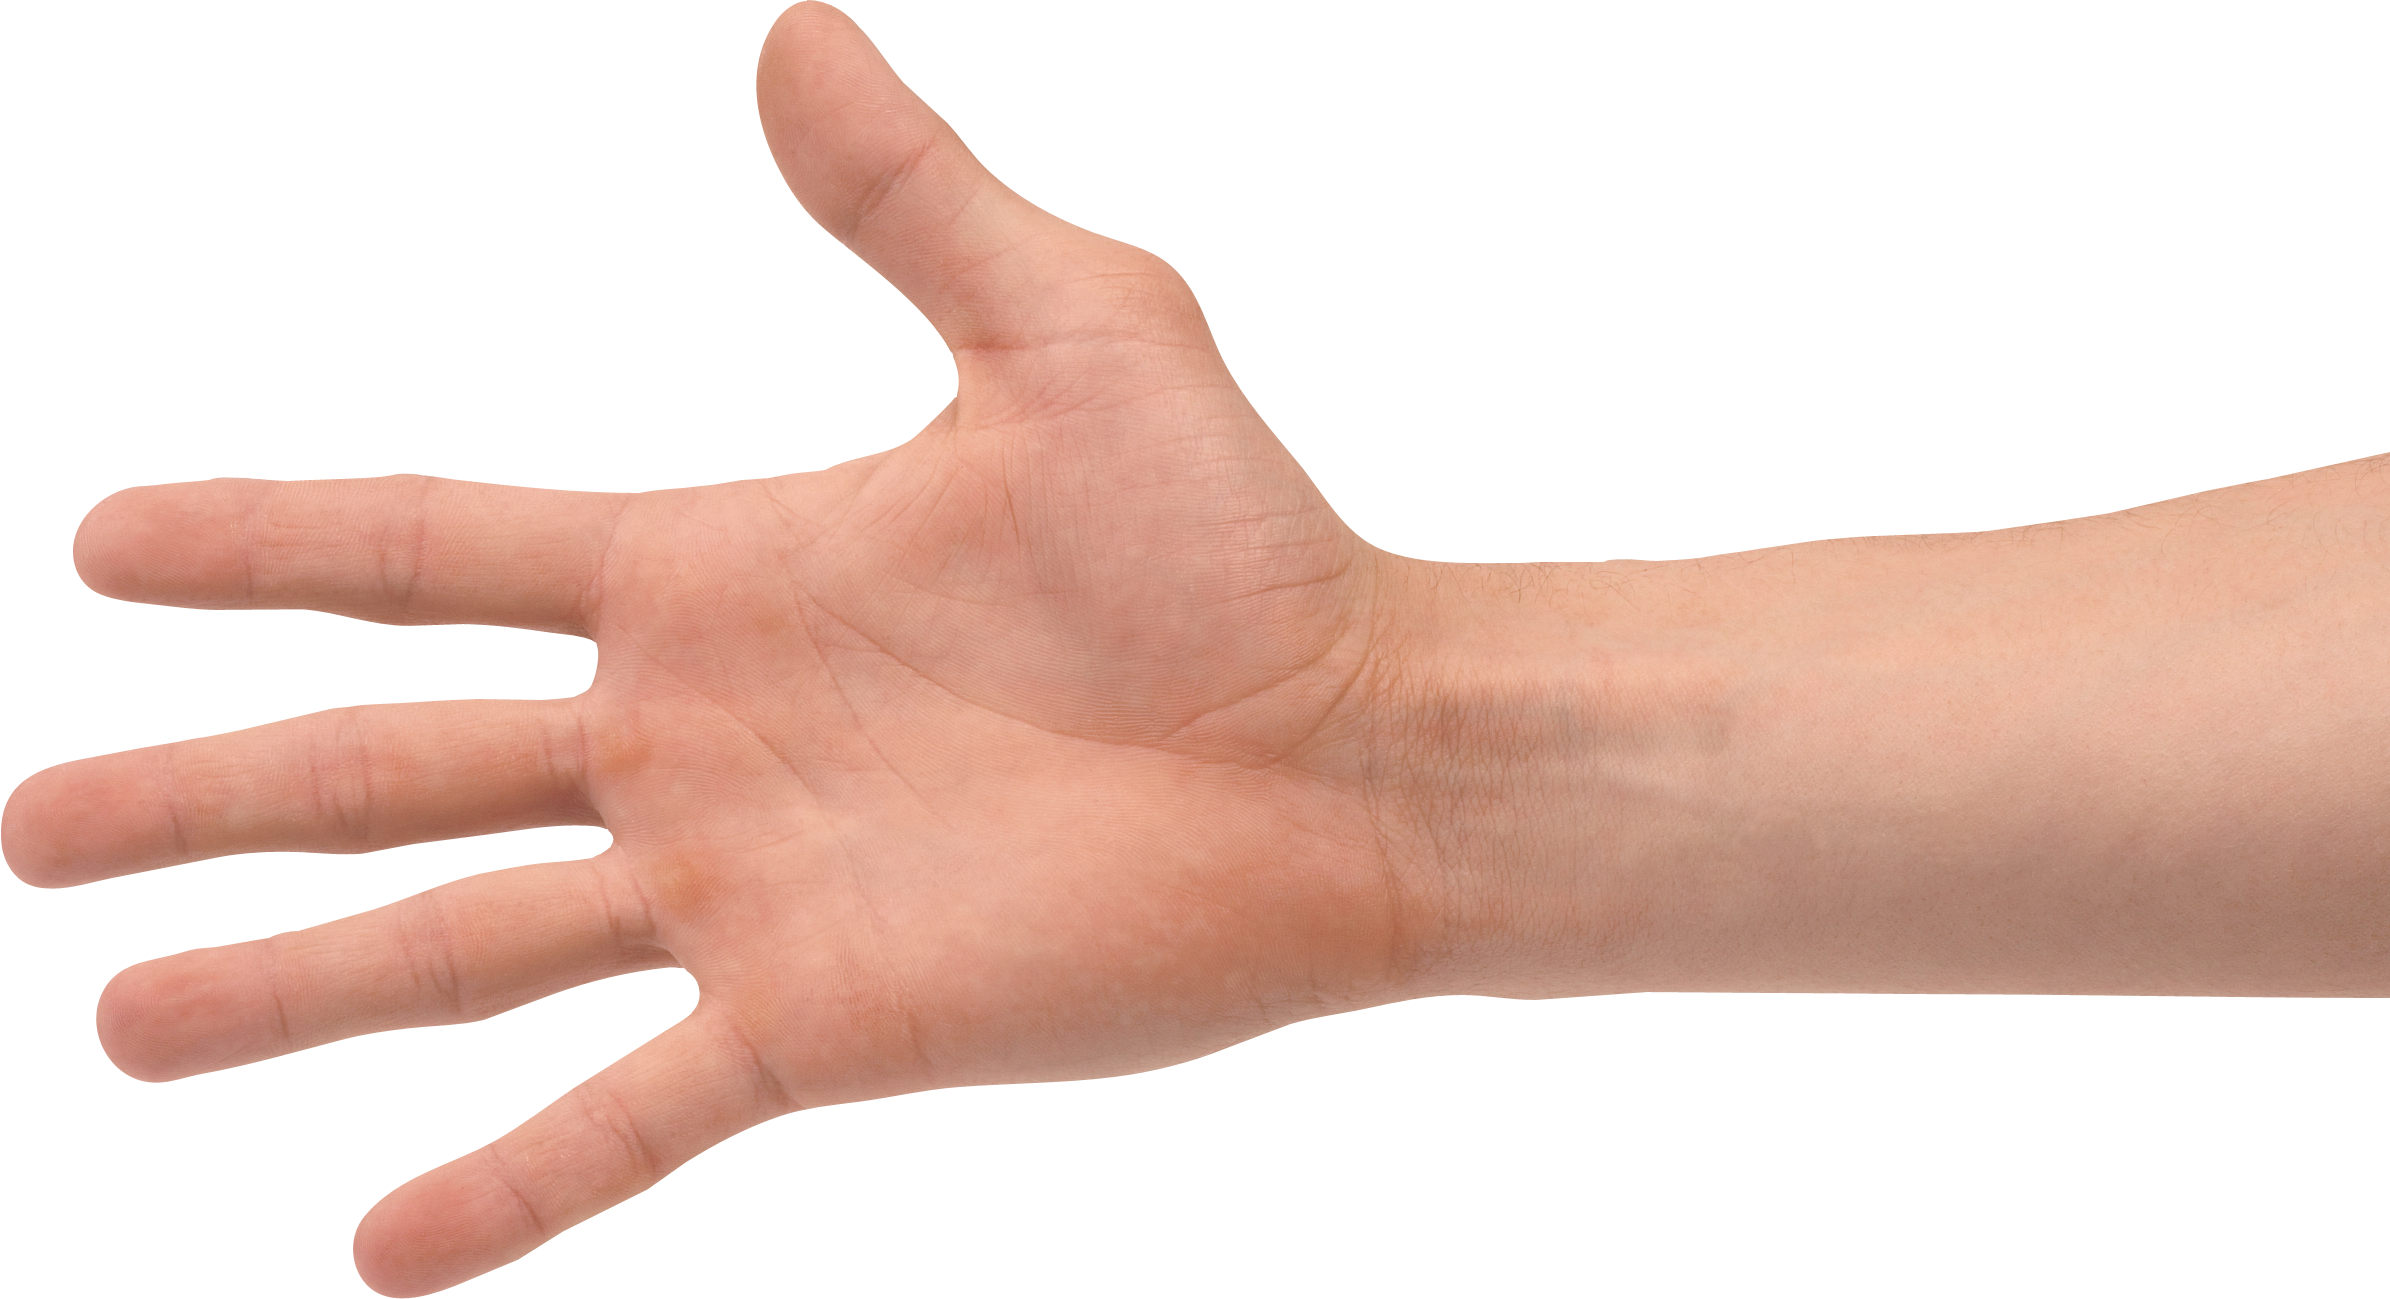 Arms reaching out png. Hands free images pictures